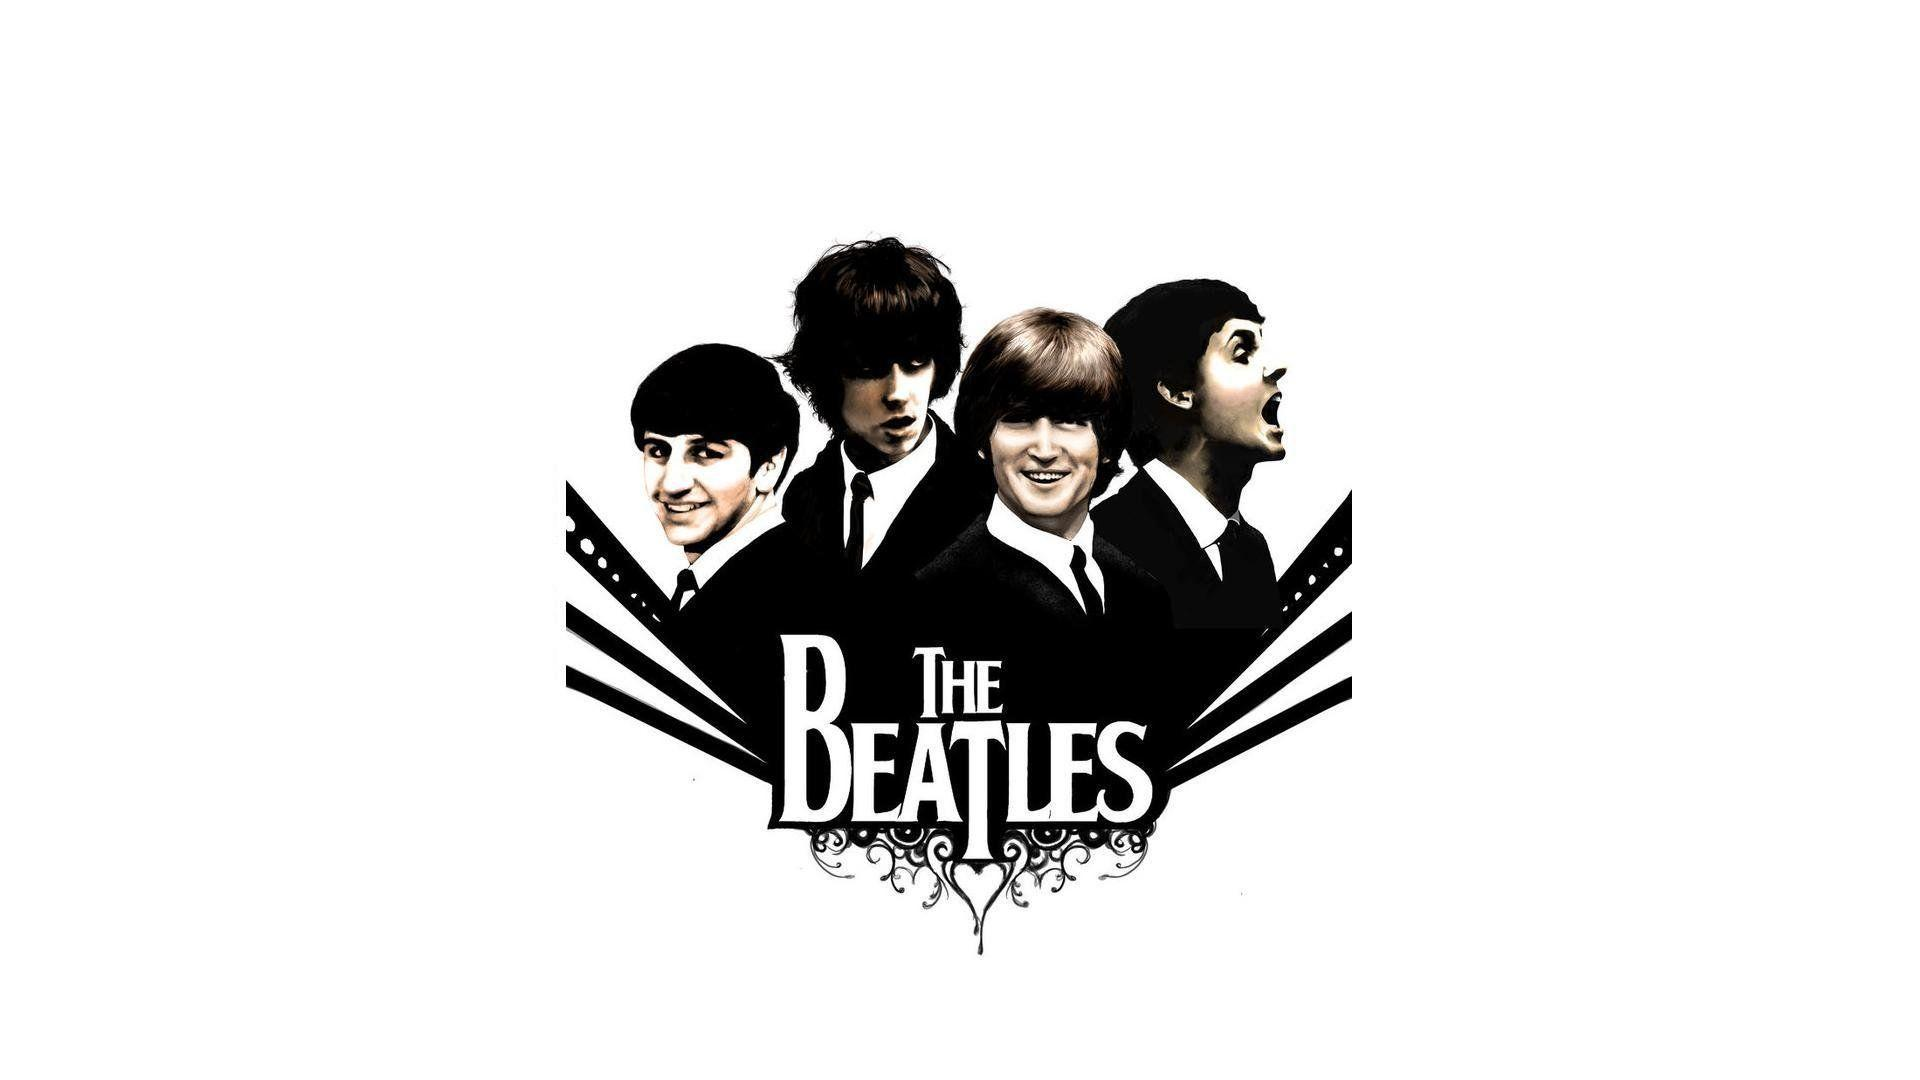 the beatles beatles beatles legend john lennon paul mccartney ...